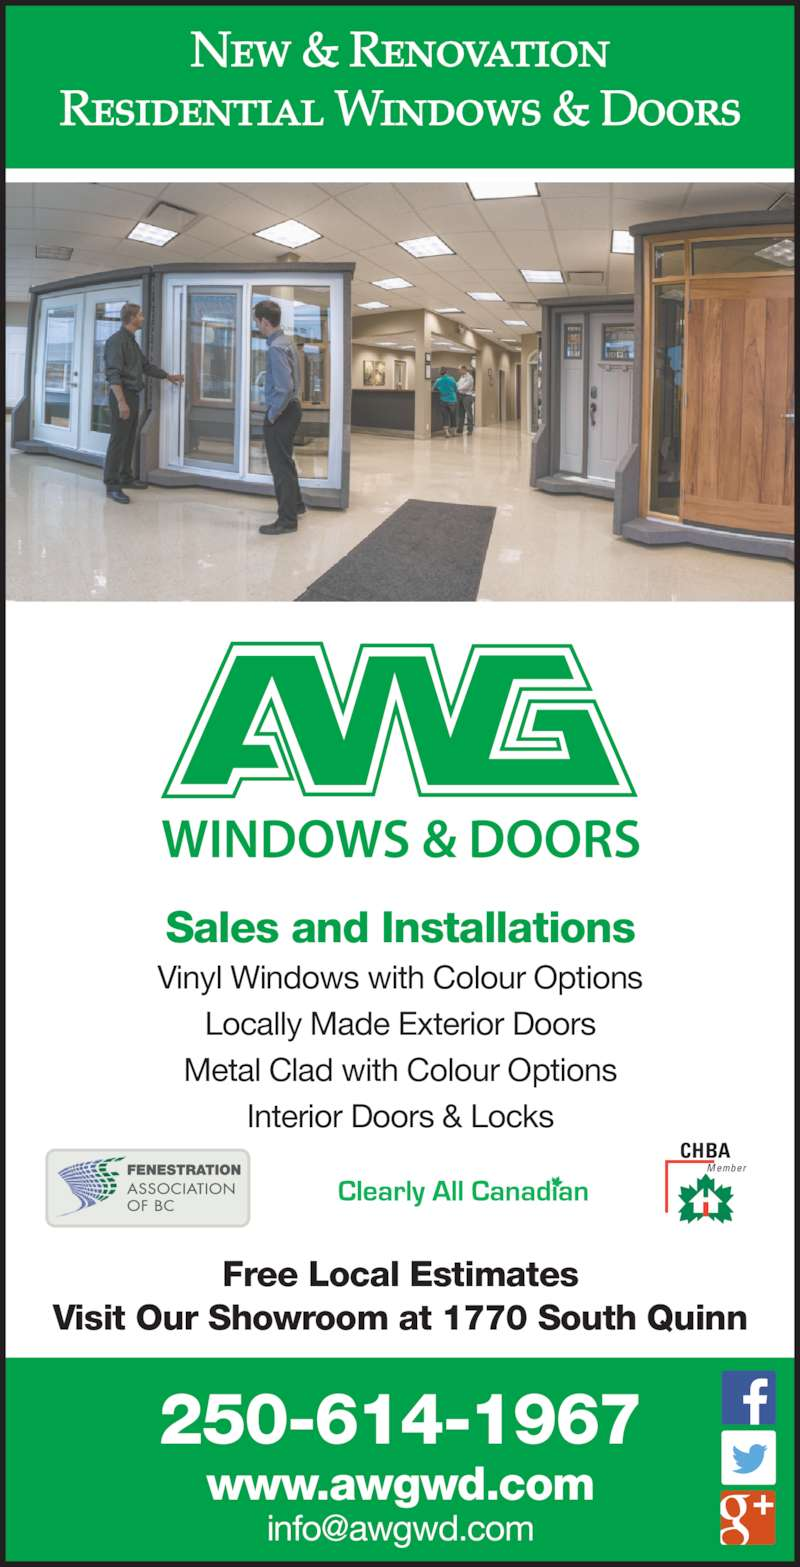 AWG Windows & Doors Plus Ltd (250-562-2265) - Display Ad - Residential Windows & Doors Free Local Estimates Visit Our Showroom at 1770 South Quinn www.awgwd.com 250-614-1967 Sales and Installations Vinyl Windows with Colour Options Locally Made Exterior Doors Metal Clad with Colour Options Interior Doors & Locks CHBA New & Renovation Member